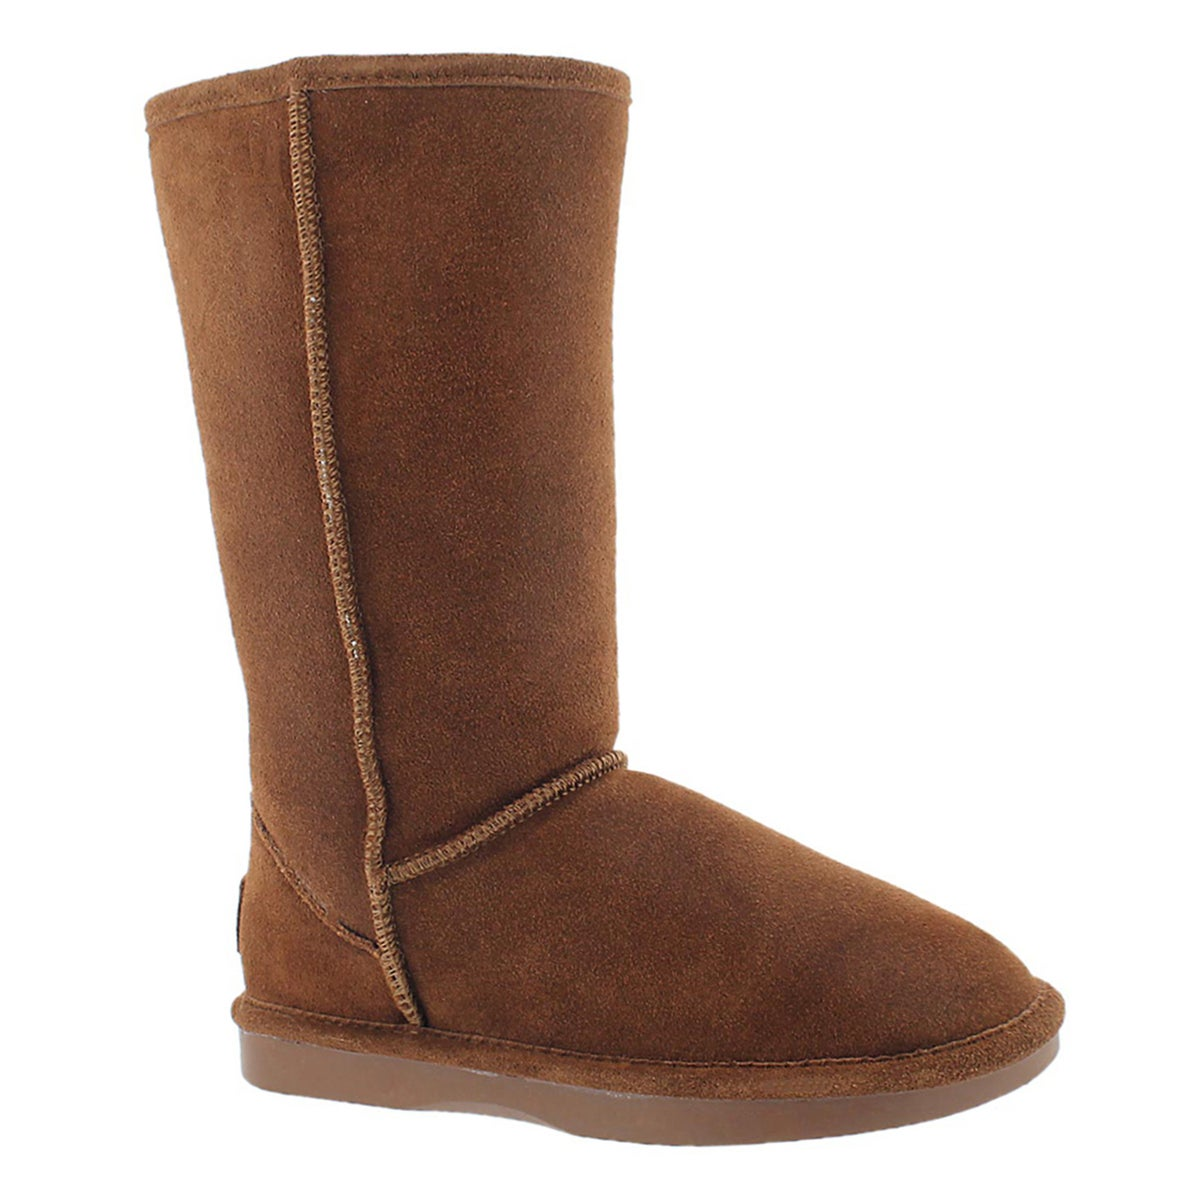 Lds Smocs 5 spice tall suede boot